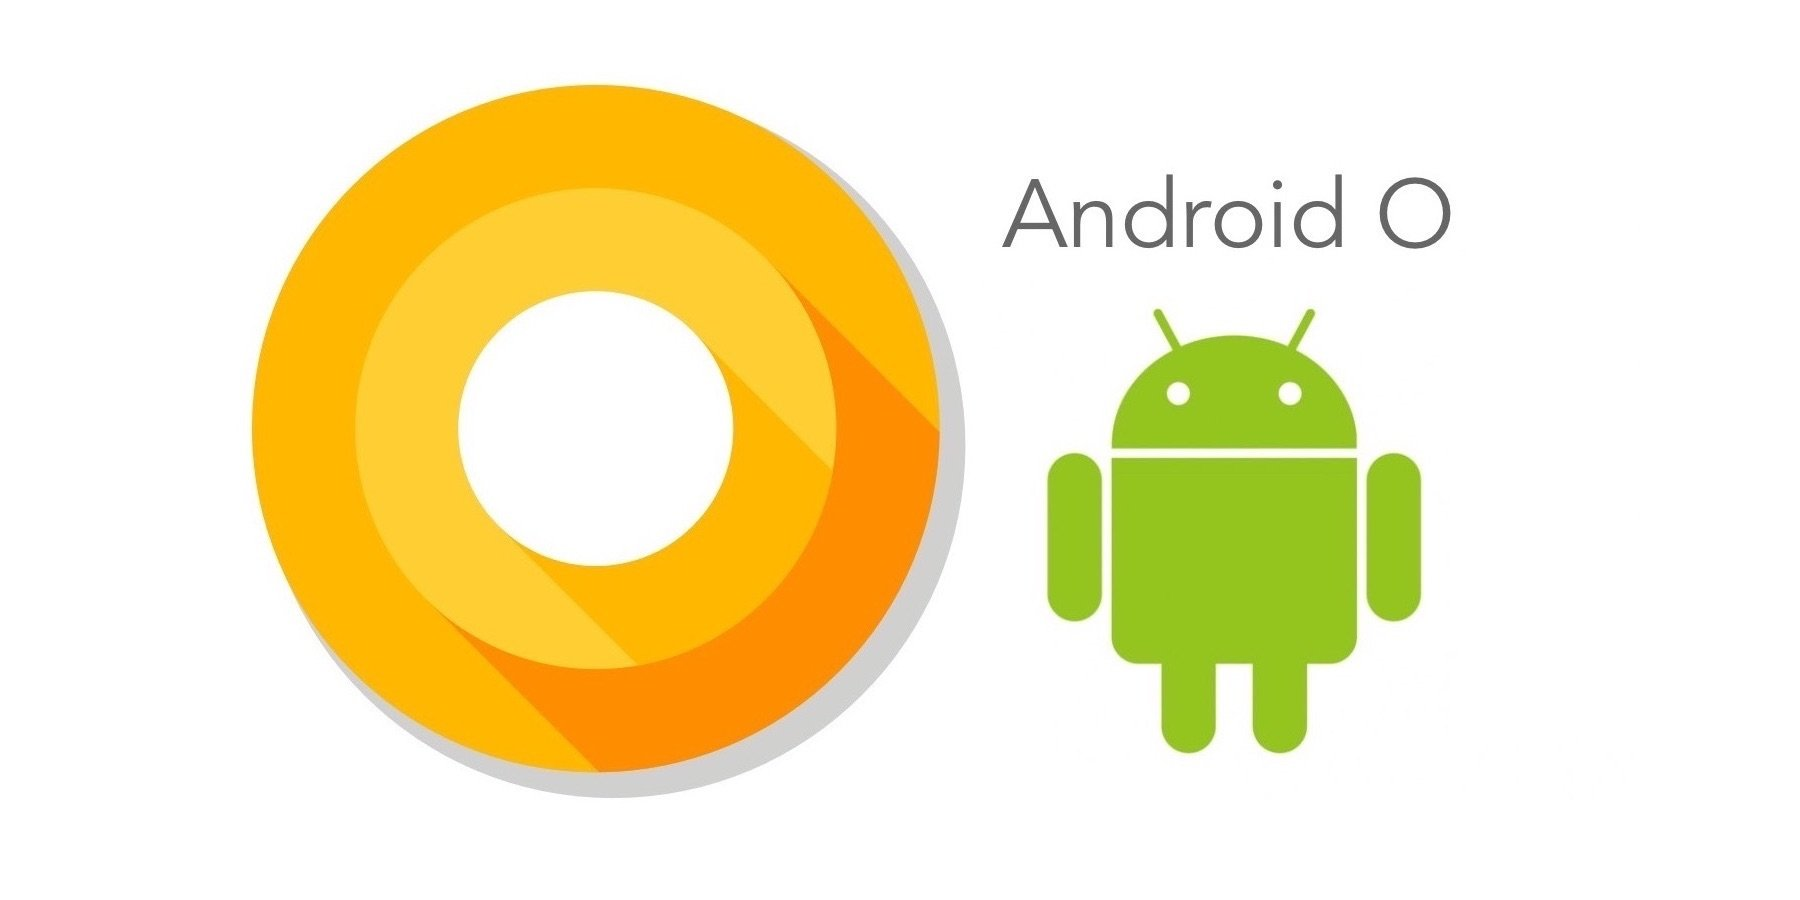 Android N vs Android O: What's the difference in the latest Android version?